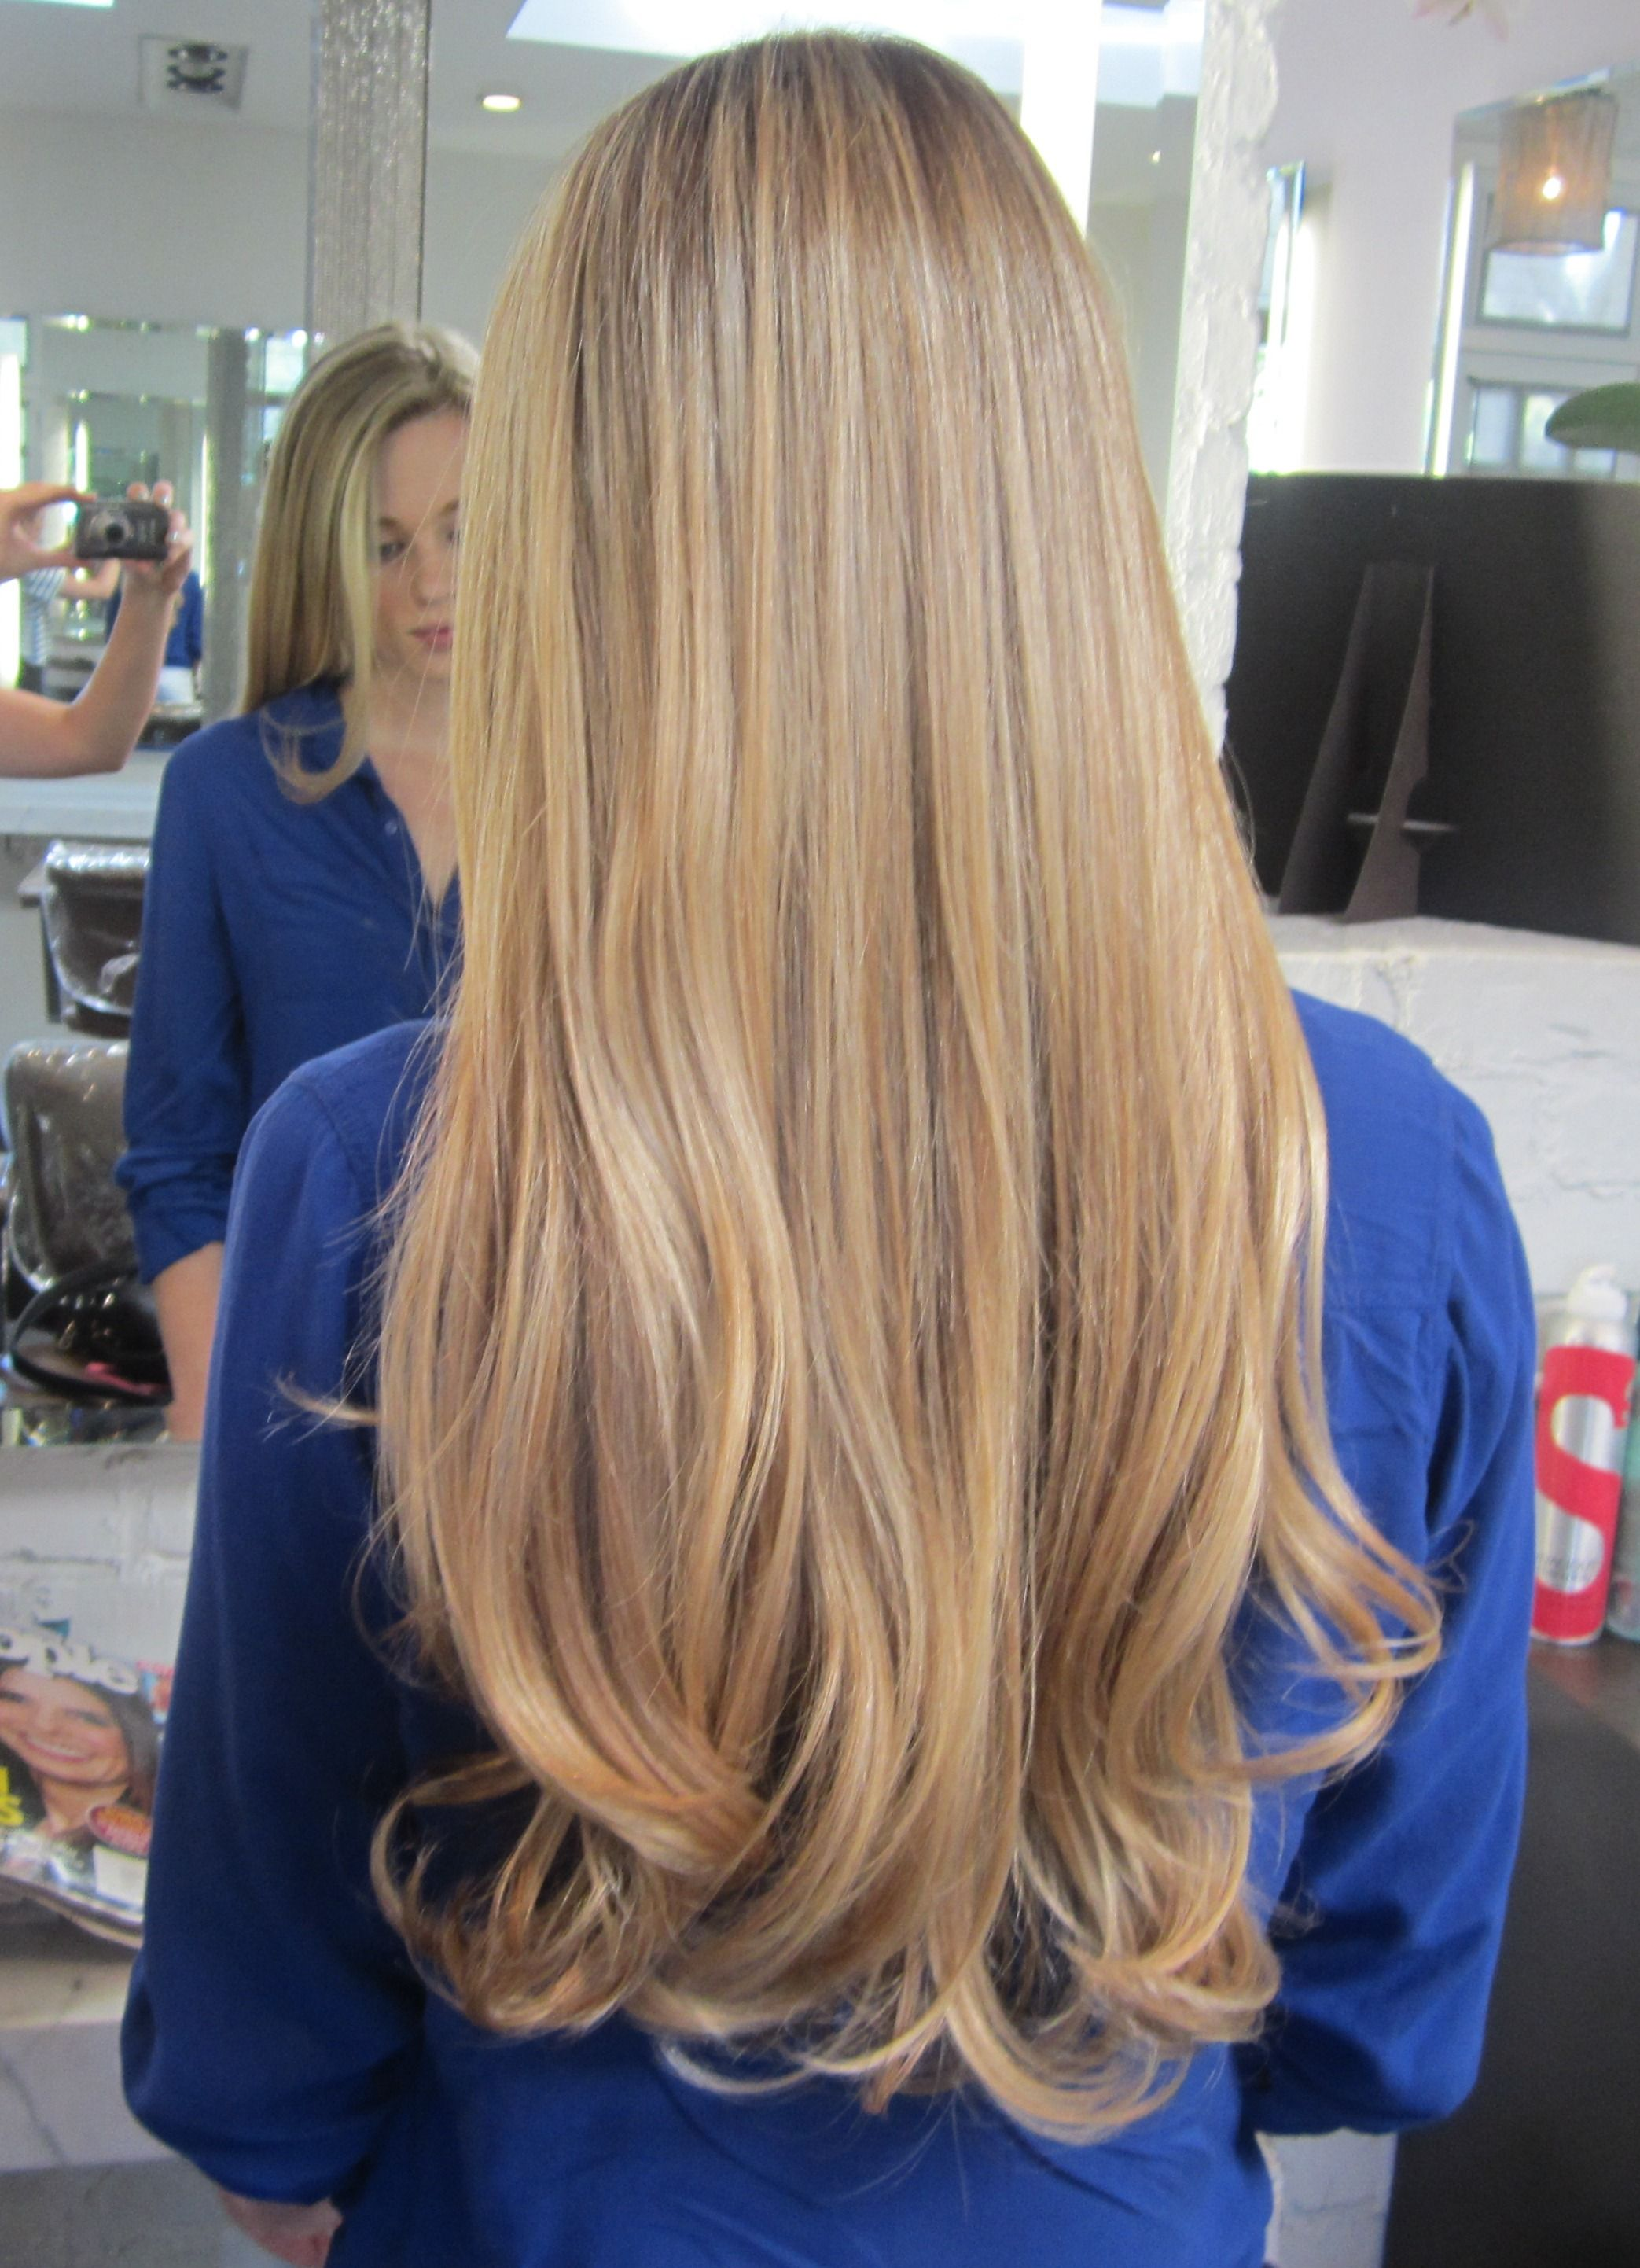 Blonde Hair Colors For Fall Hairstyles For Women And Men